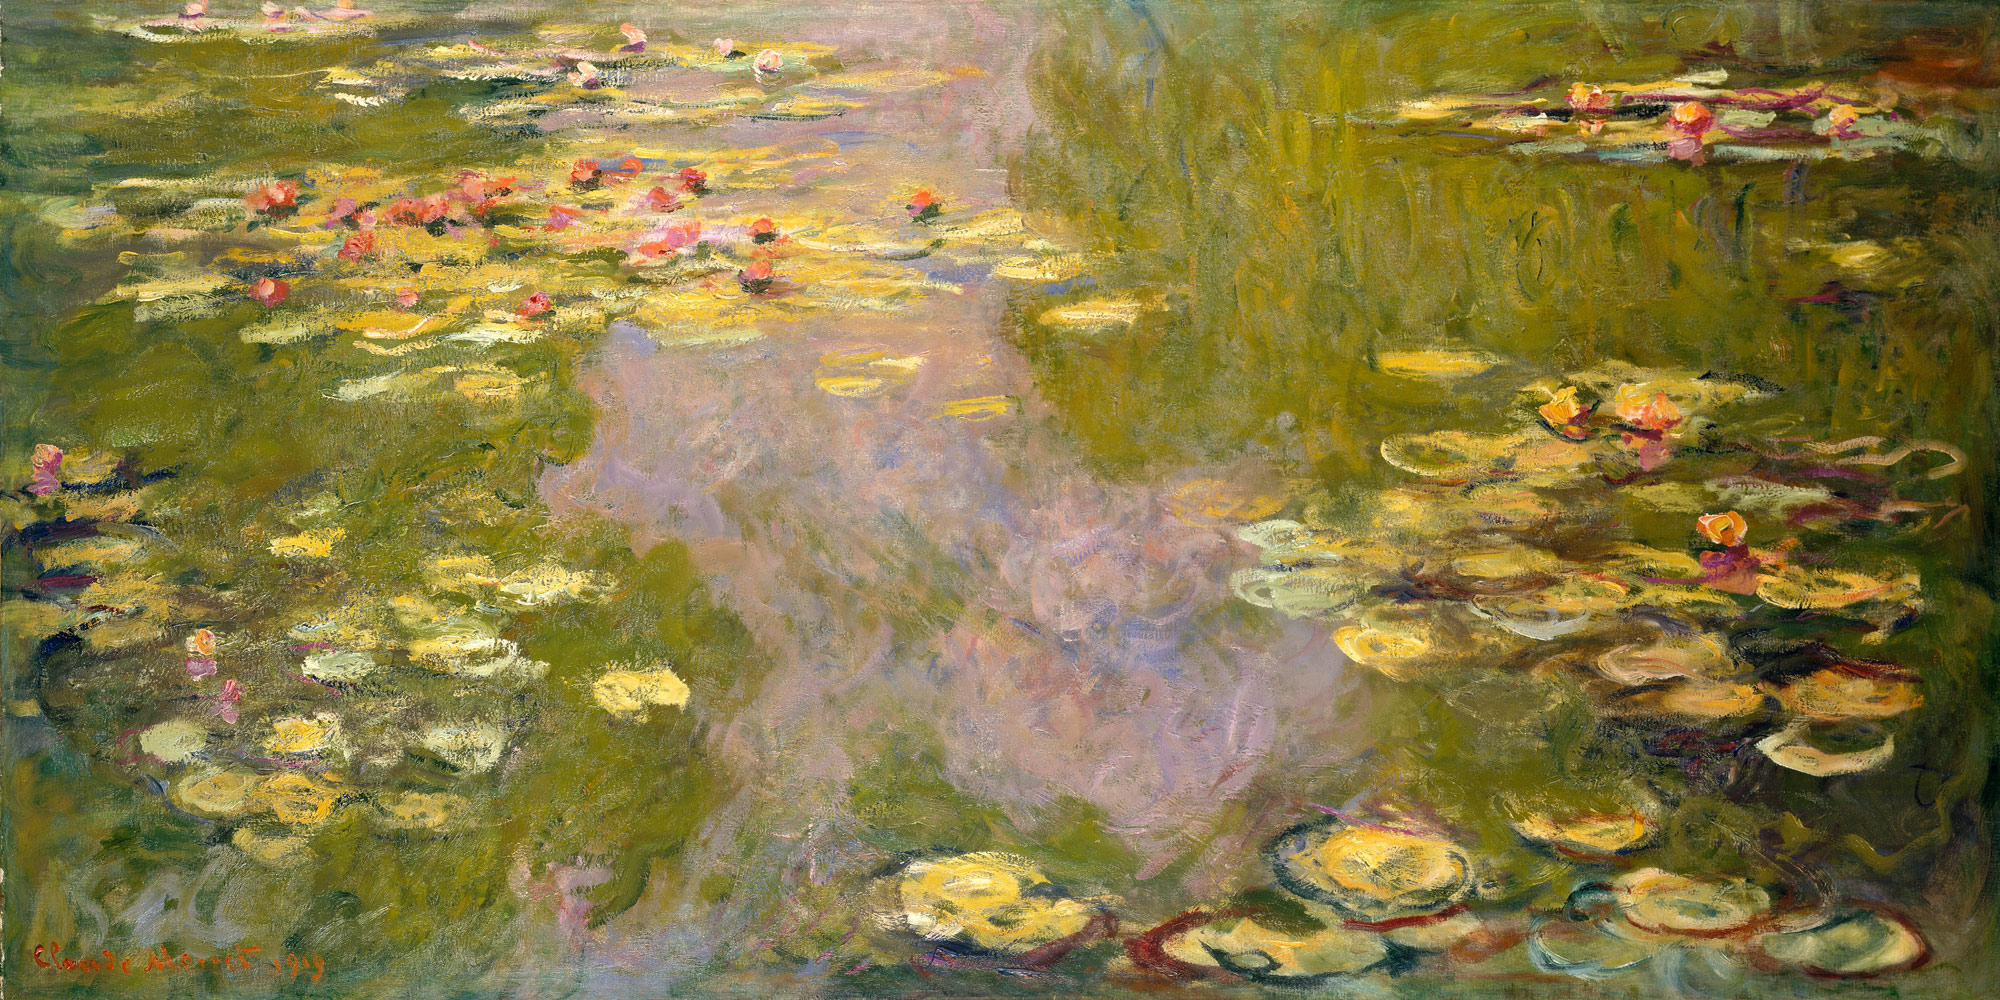 One of around 250 paintings from Calude Monet's extensive  Water Lilies  seties.